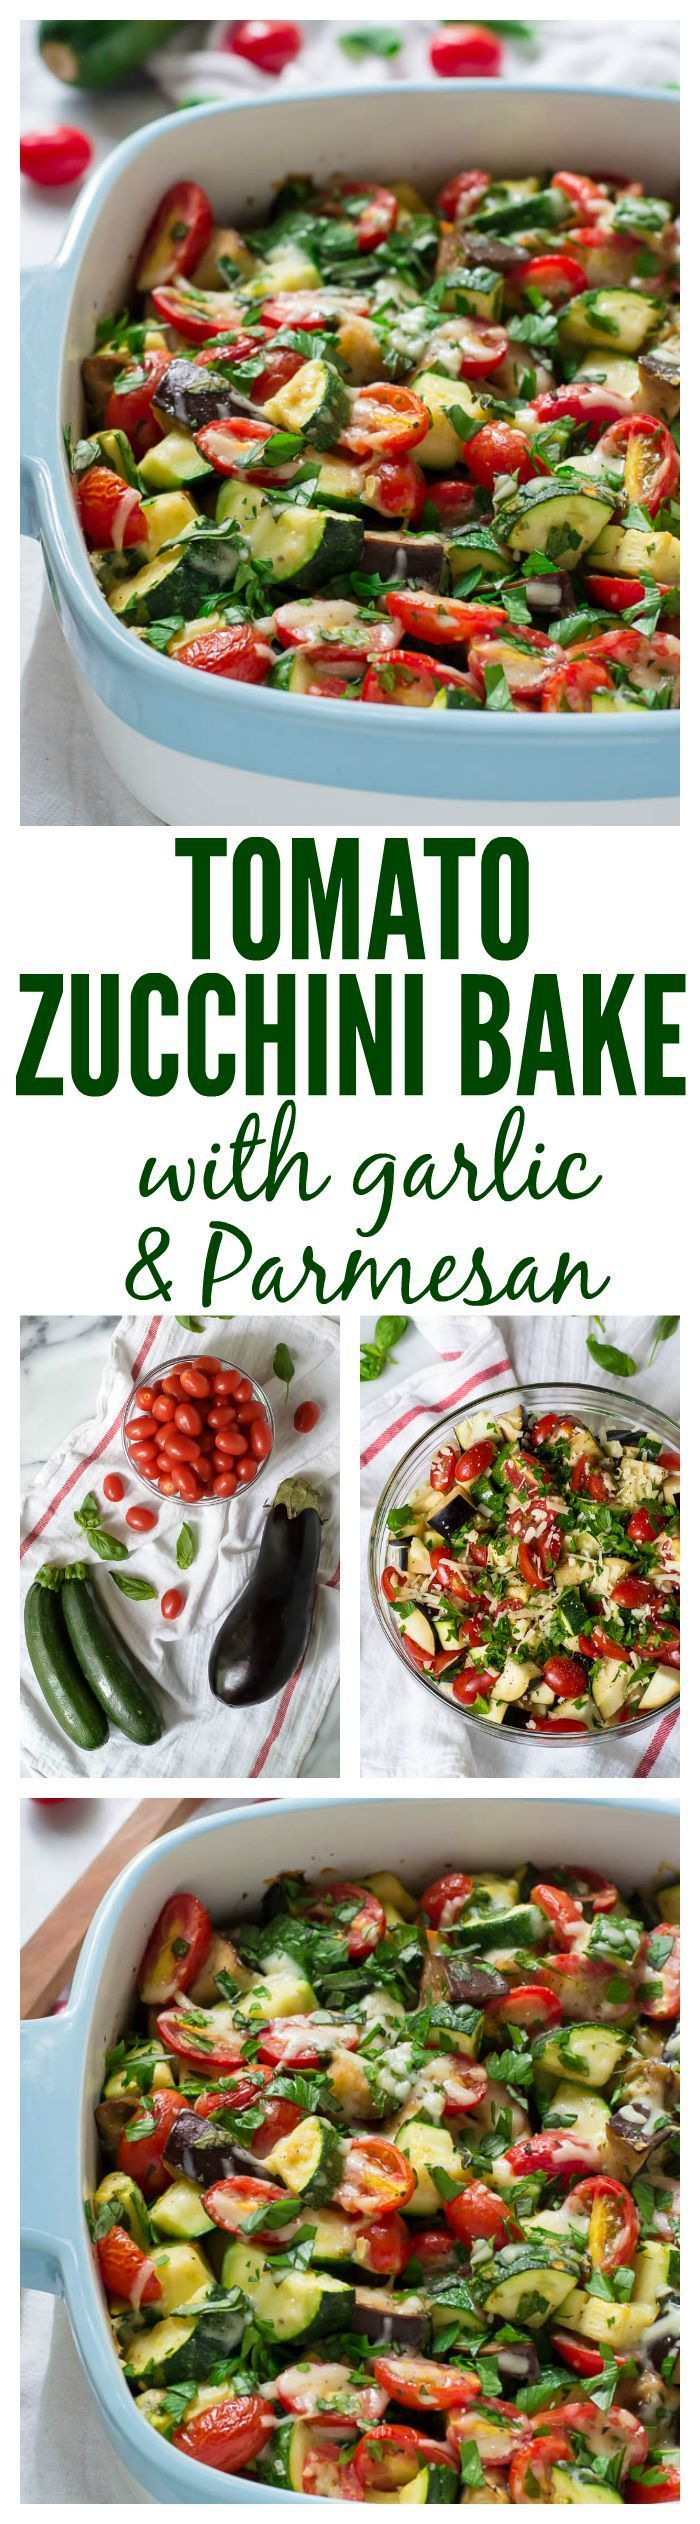 Tomato Eggplant Zucchini Bake with Garlic and Parmesan